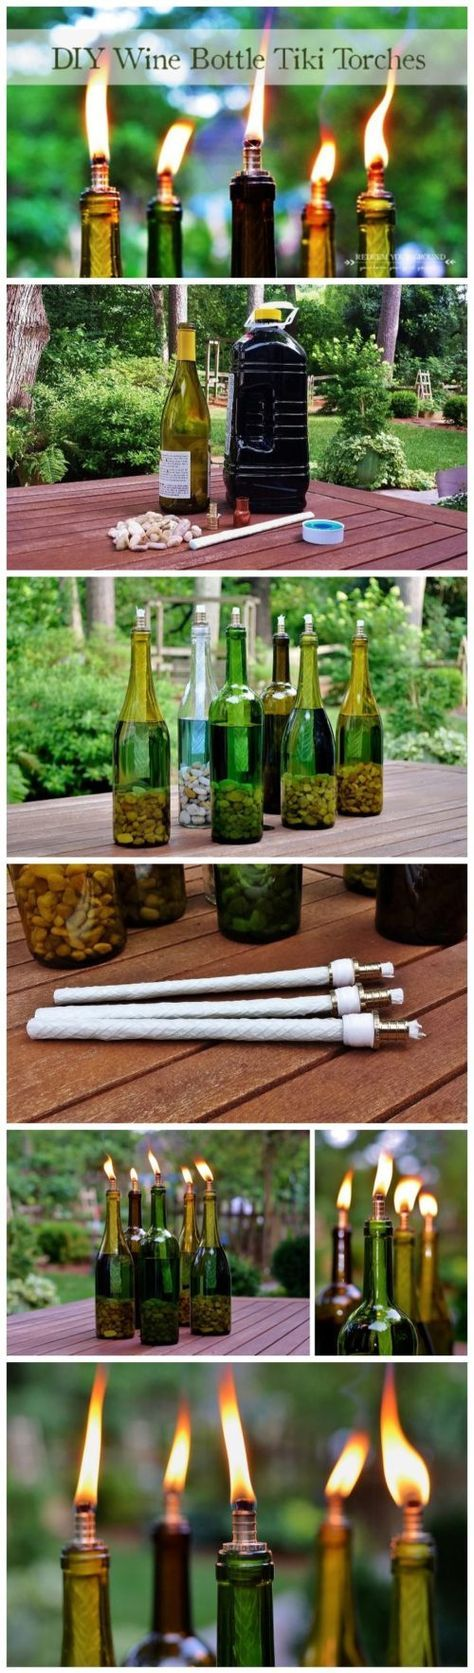 Wine Bottle Tiki Torches Easy DIY Video Instructions